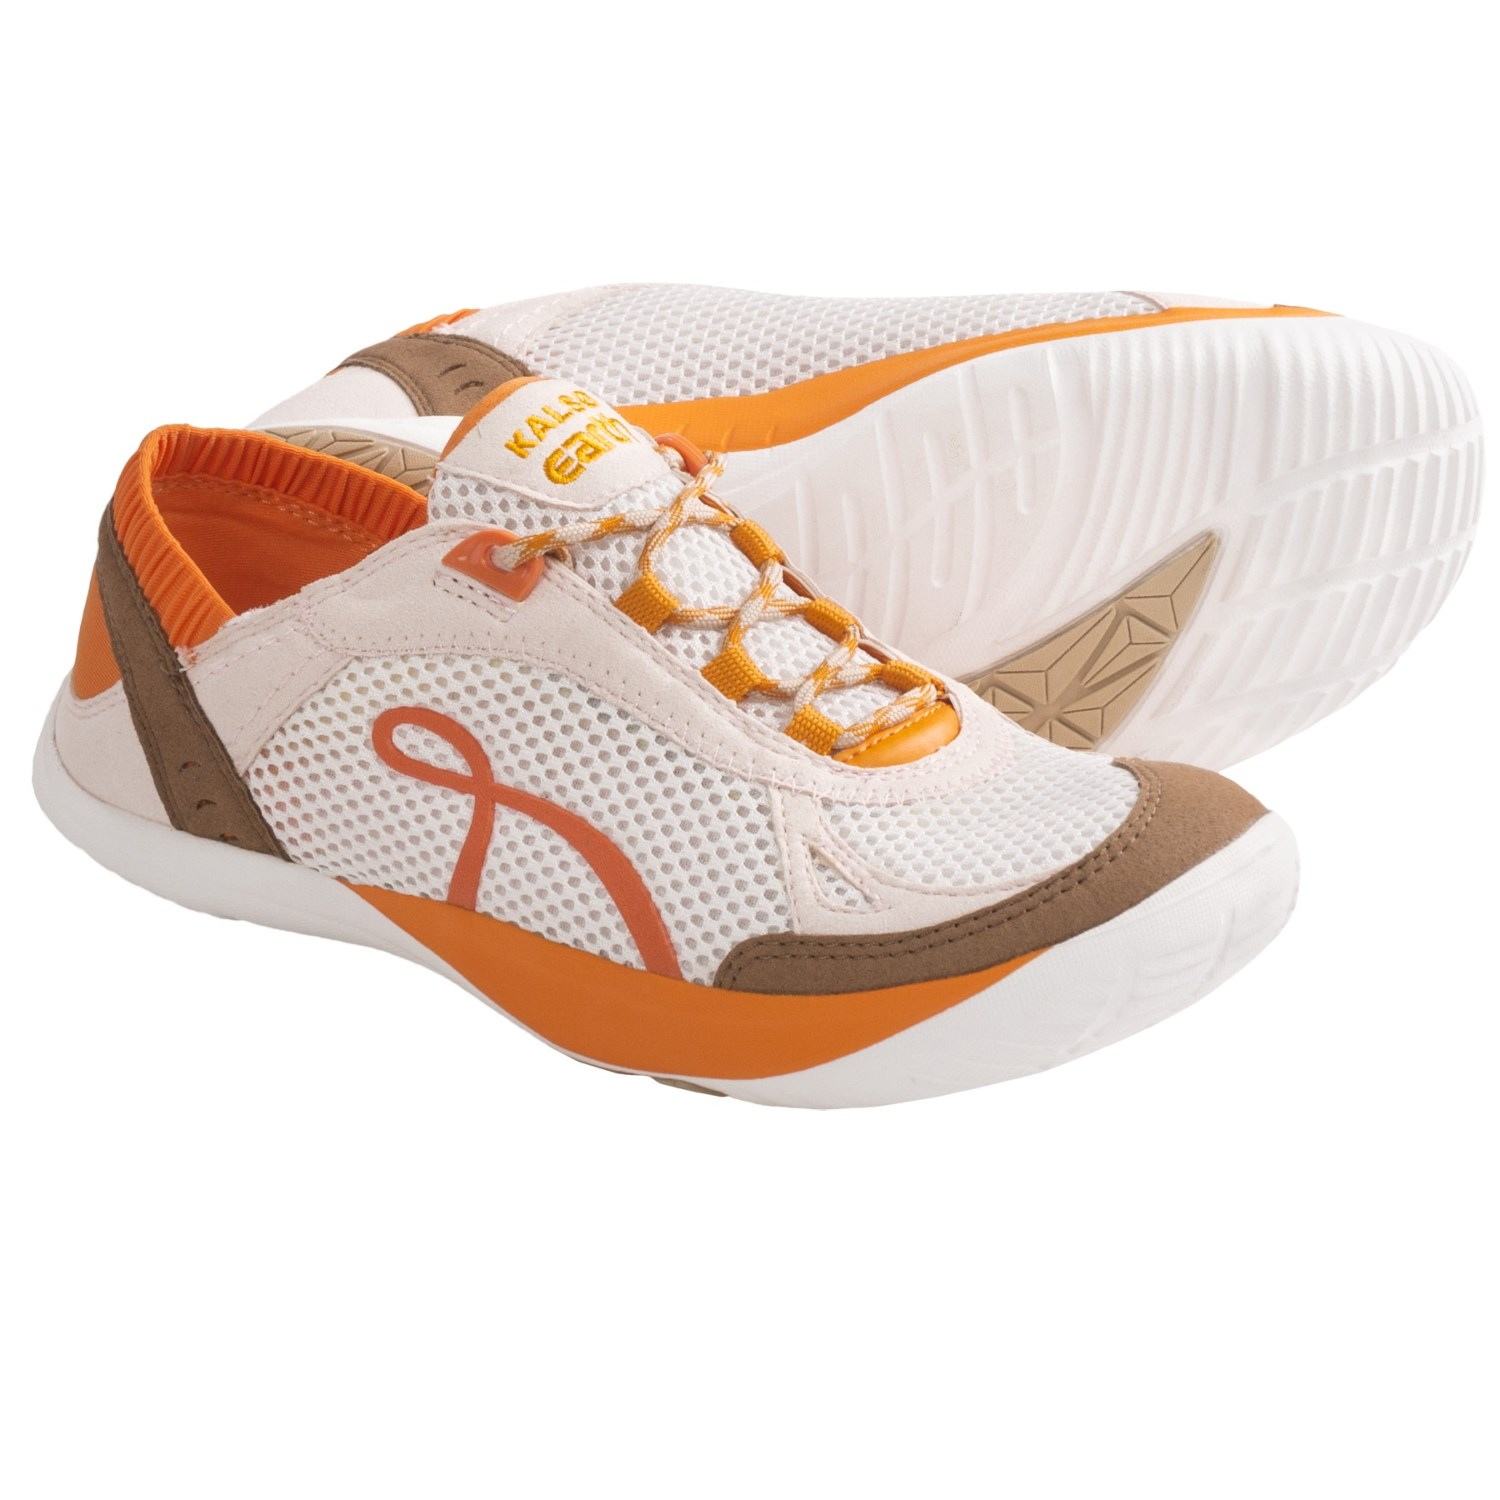 Kalso Earth Shoes Prosper Reviews